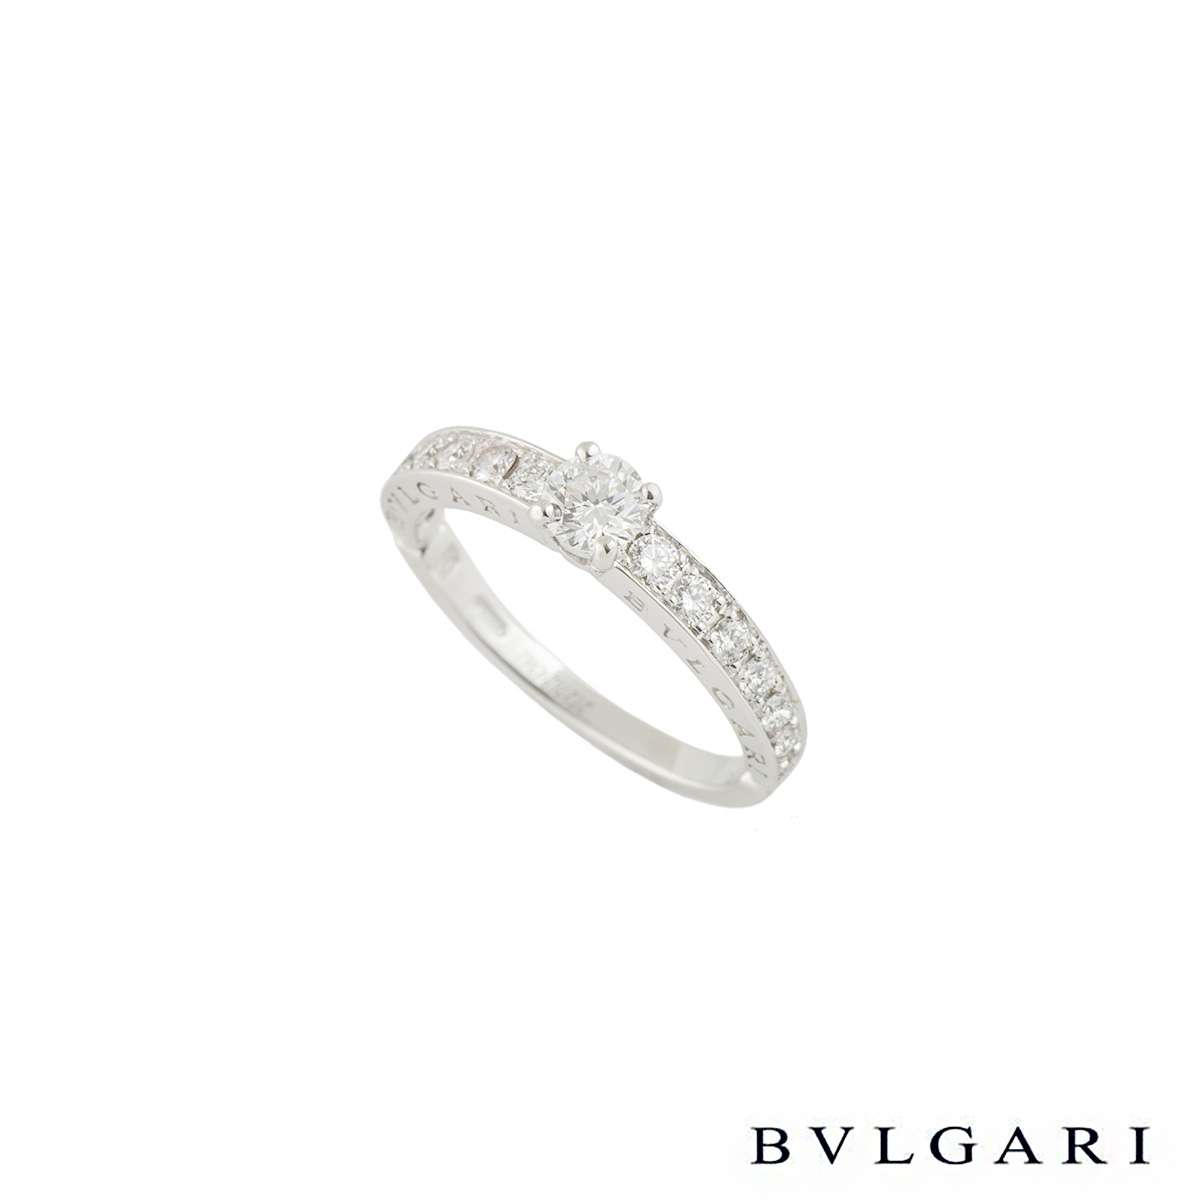 Bvlgari  Bvlgari Diamond Ring E/VVS2